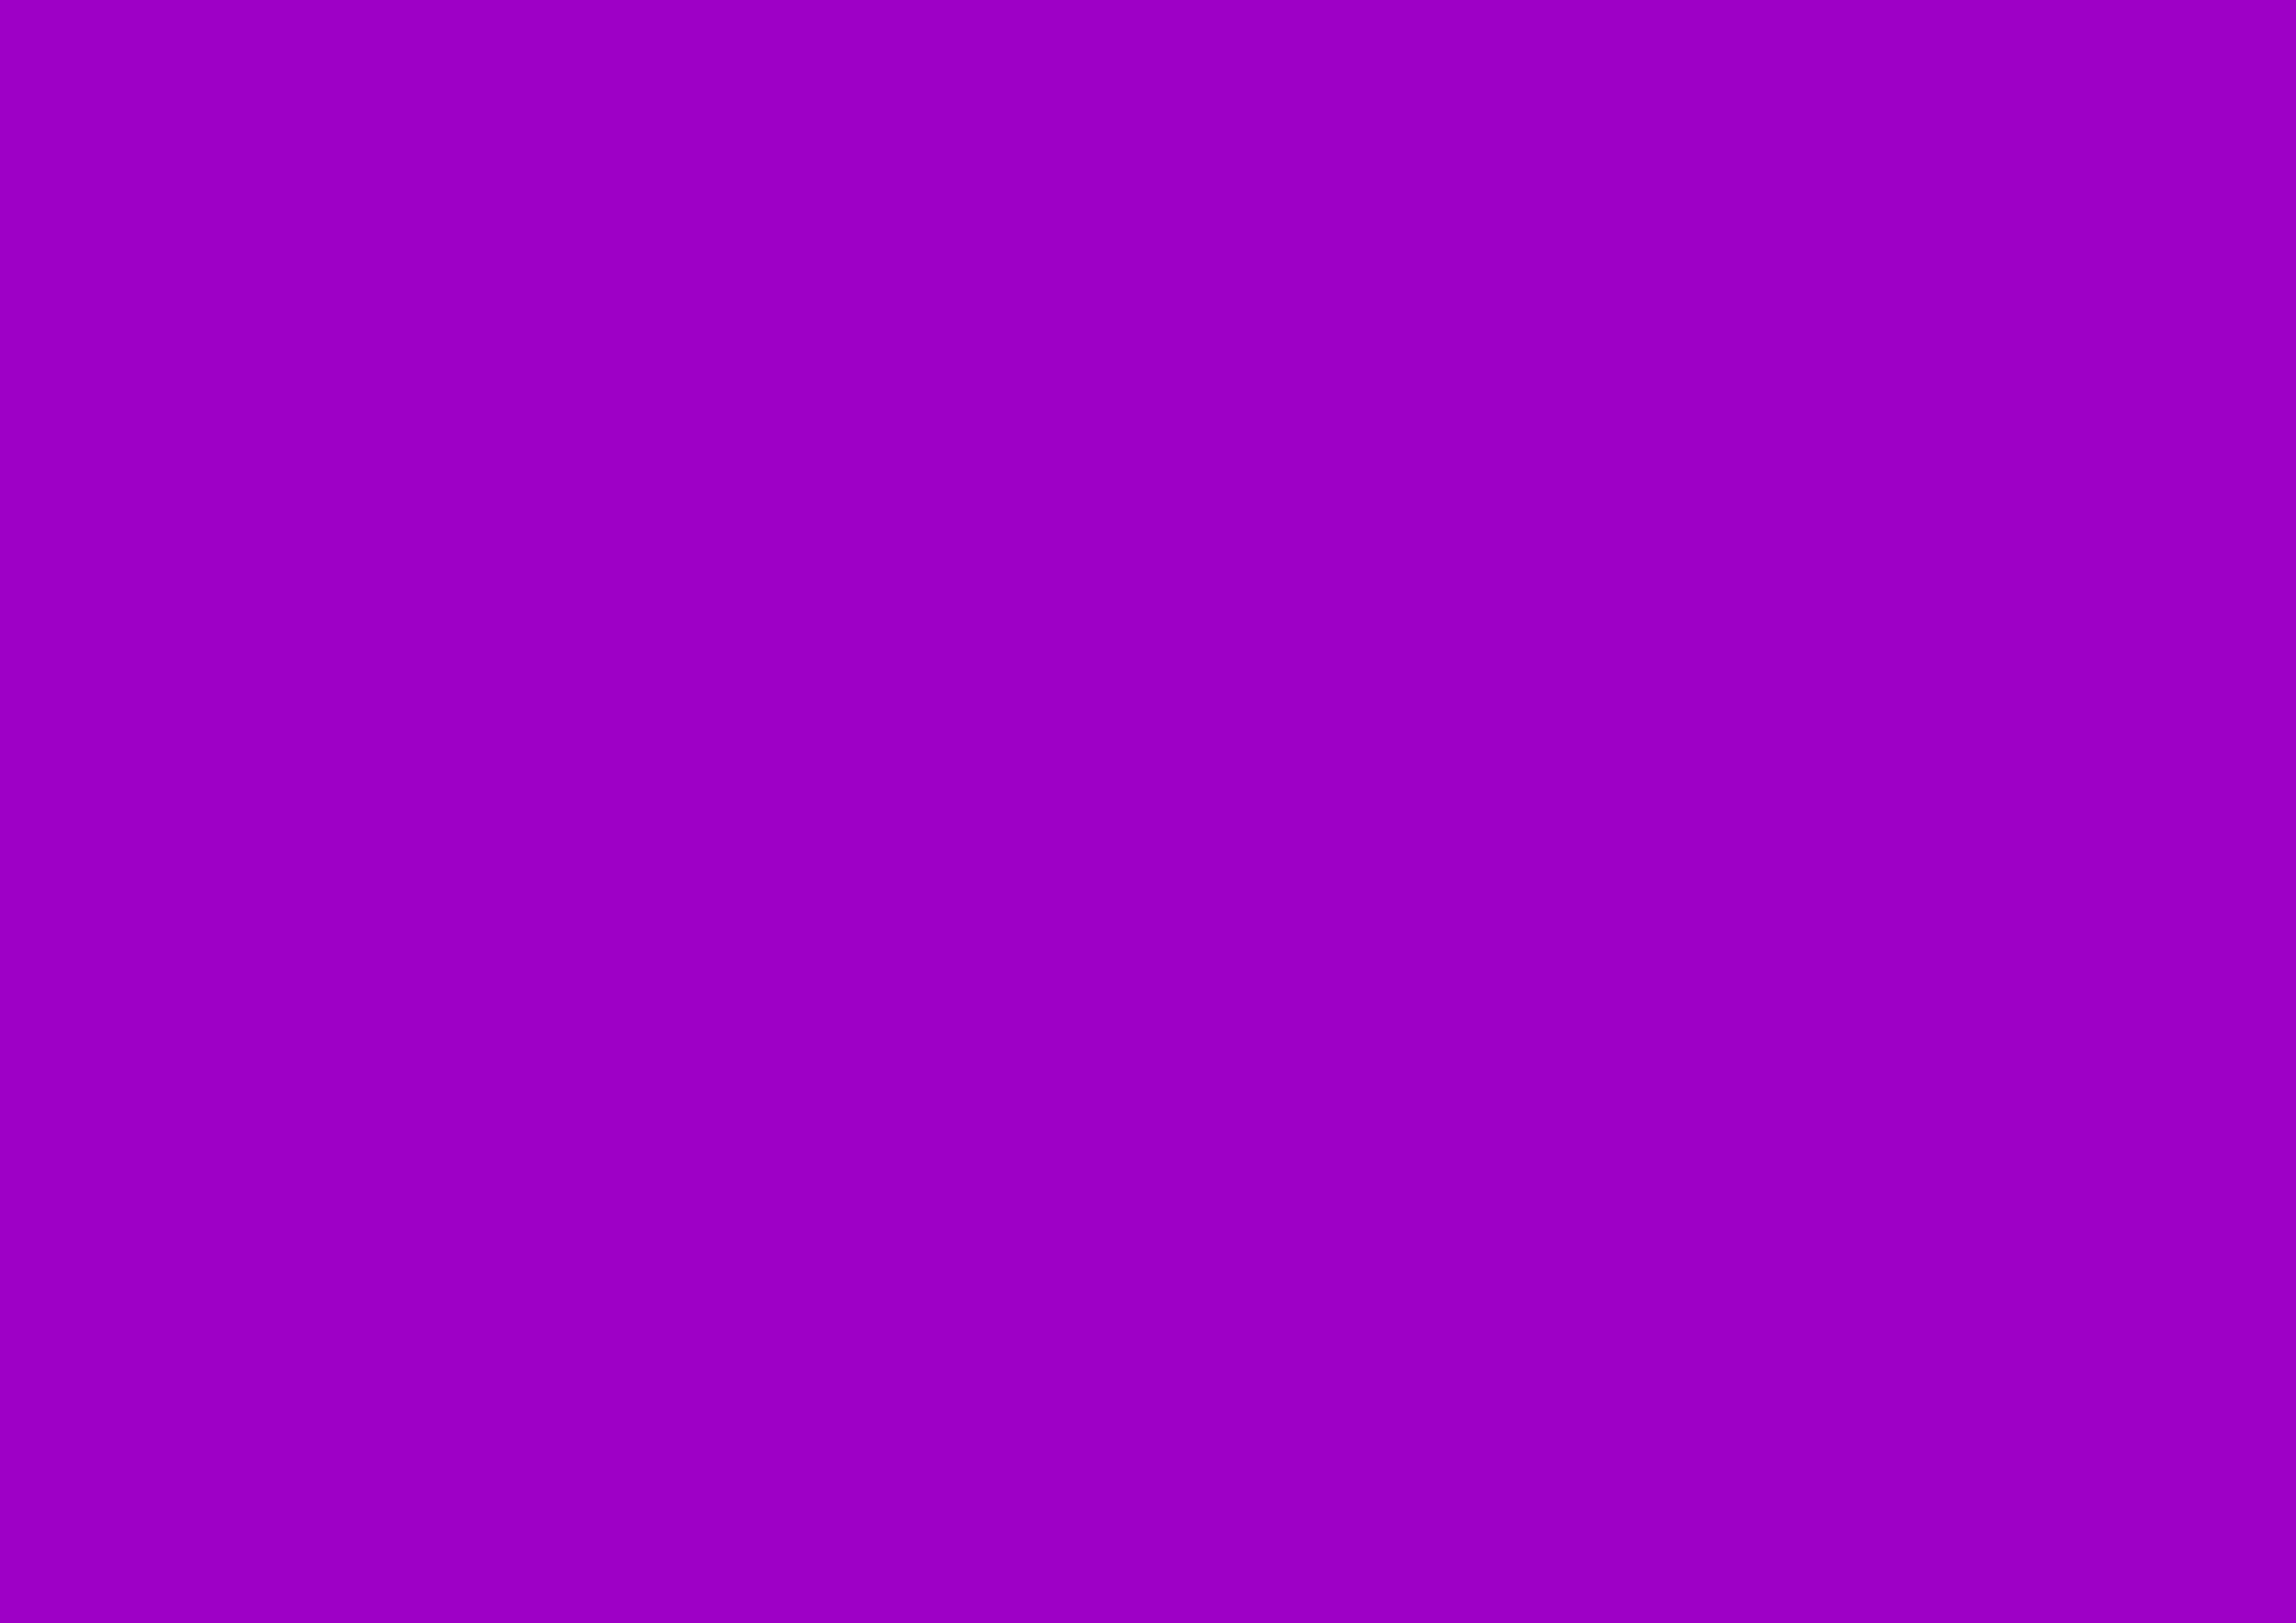 3508x2480 Purple Munsell Solid Color Background